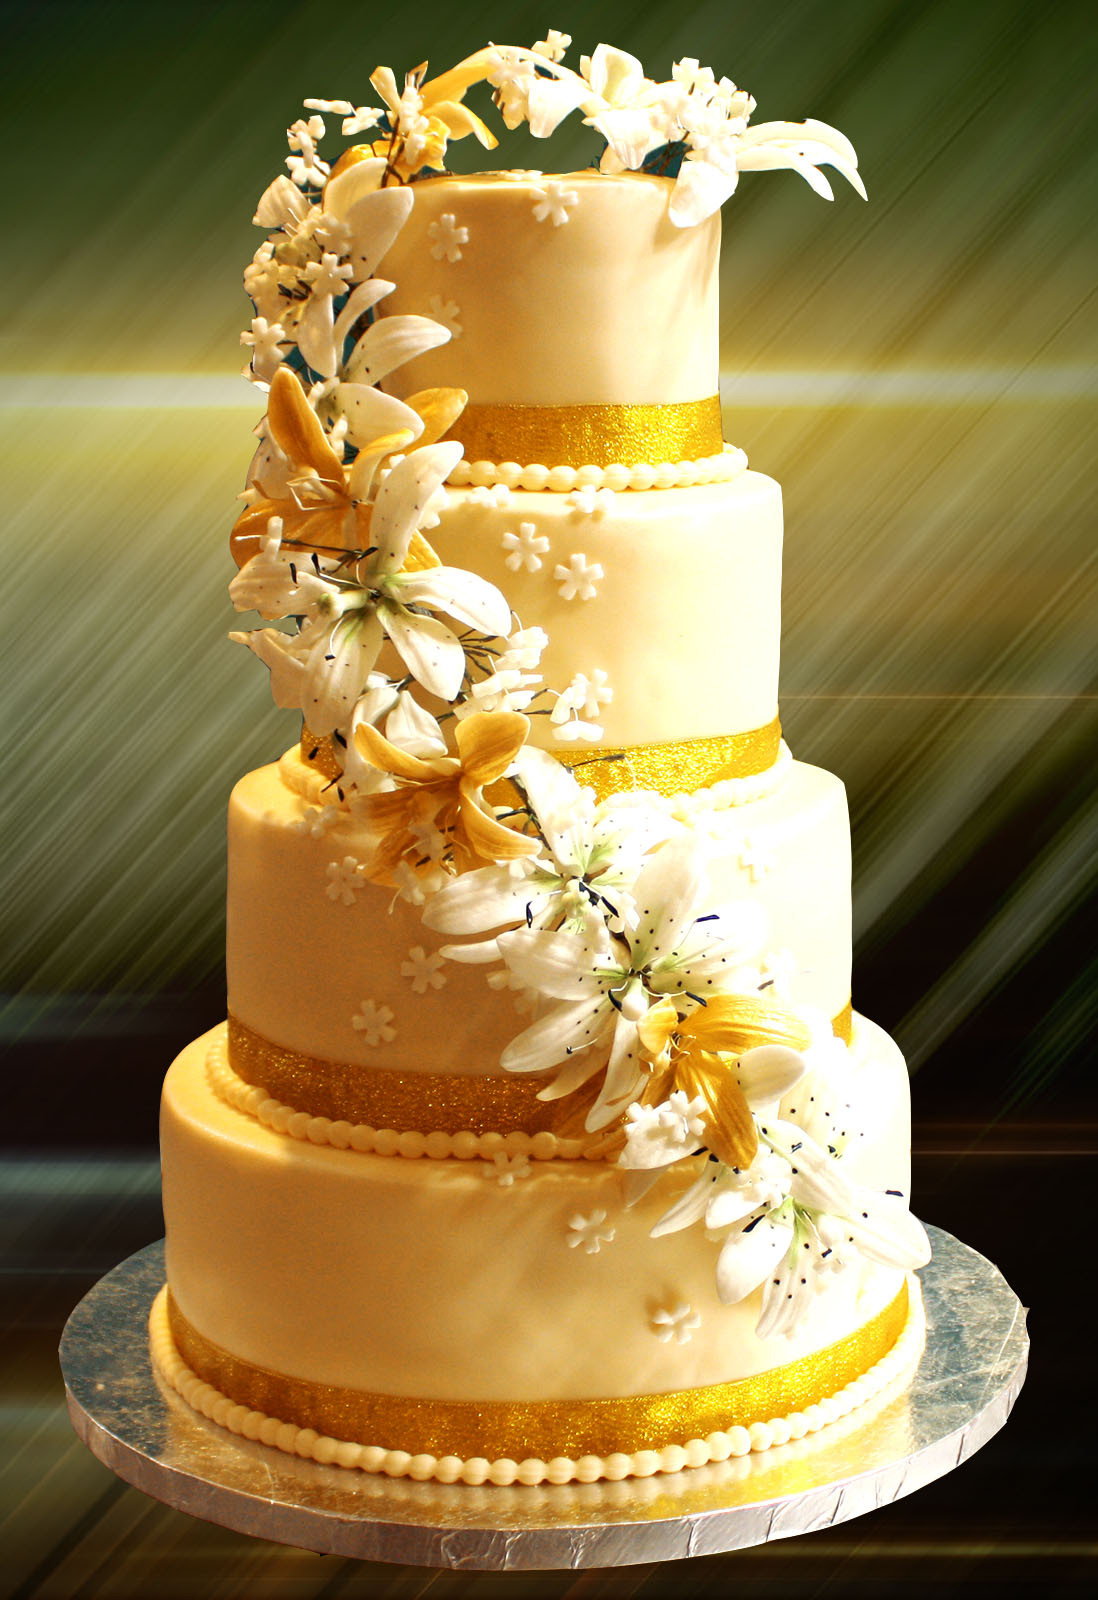 Wedding Cakes Com  wedding cake in Dubai